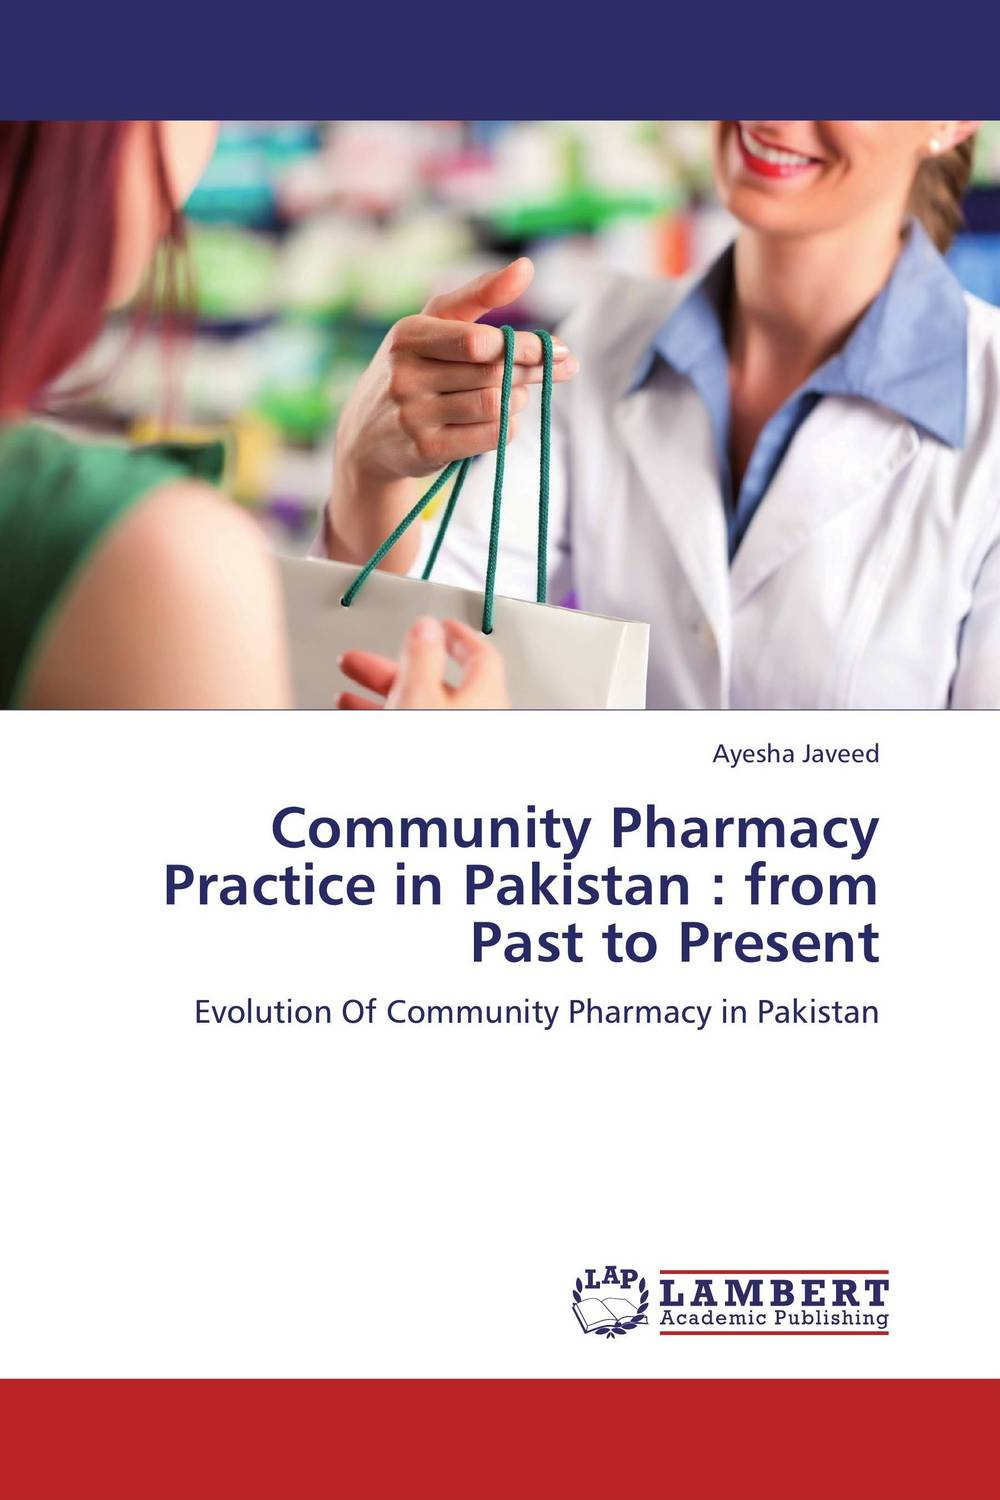 Community Pharmacy Practice in Pakistan : from Past to Present the role of evaluation as a mechanism for advancing principal practice